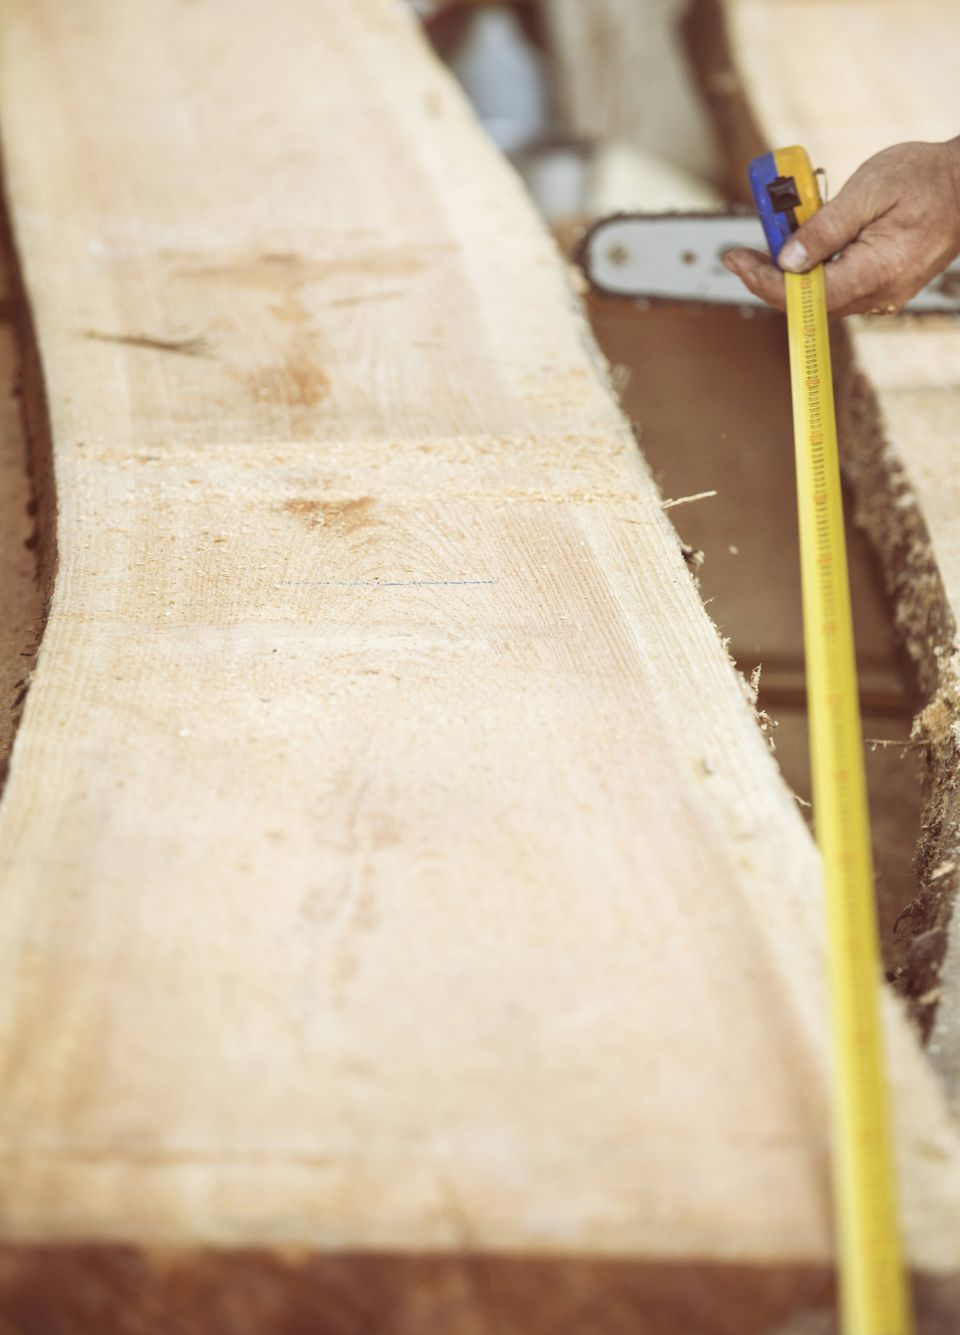 Carpenter measuring raw wooden plank